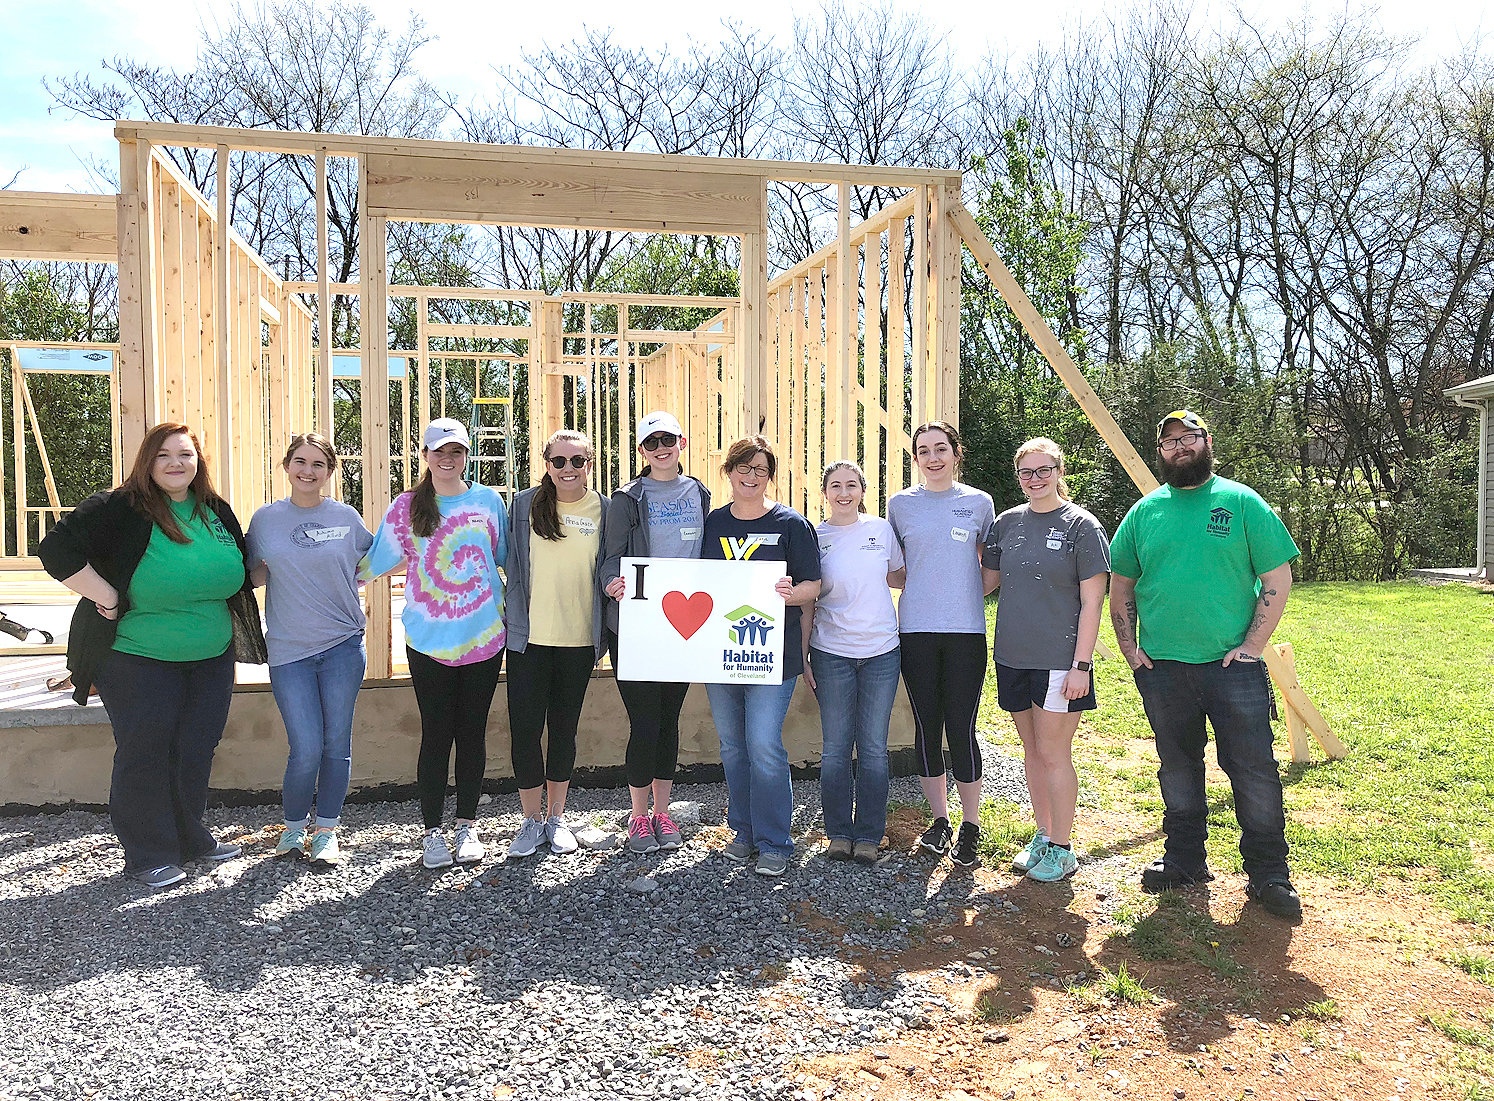 THE WALKER VALLEY High School Habitat for Humanity student chapter enjoys helping our community with affordable housing. Overseen by Walker Valley teacher Josh Justice, the chapter has volunteered with Habitat since 2017. From left are Habitat homeowner Shiloh White, Autumn Millard, Mikayla Beasley, Anna Grace Jackson, Cameron Hutt, Lara Davidson, Virginia Willis, Lauren Harwood, Annie Kate Gibson and Habitat homeowner Marvin 